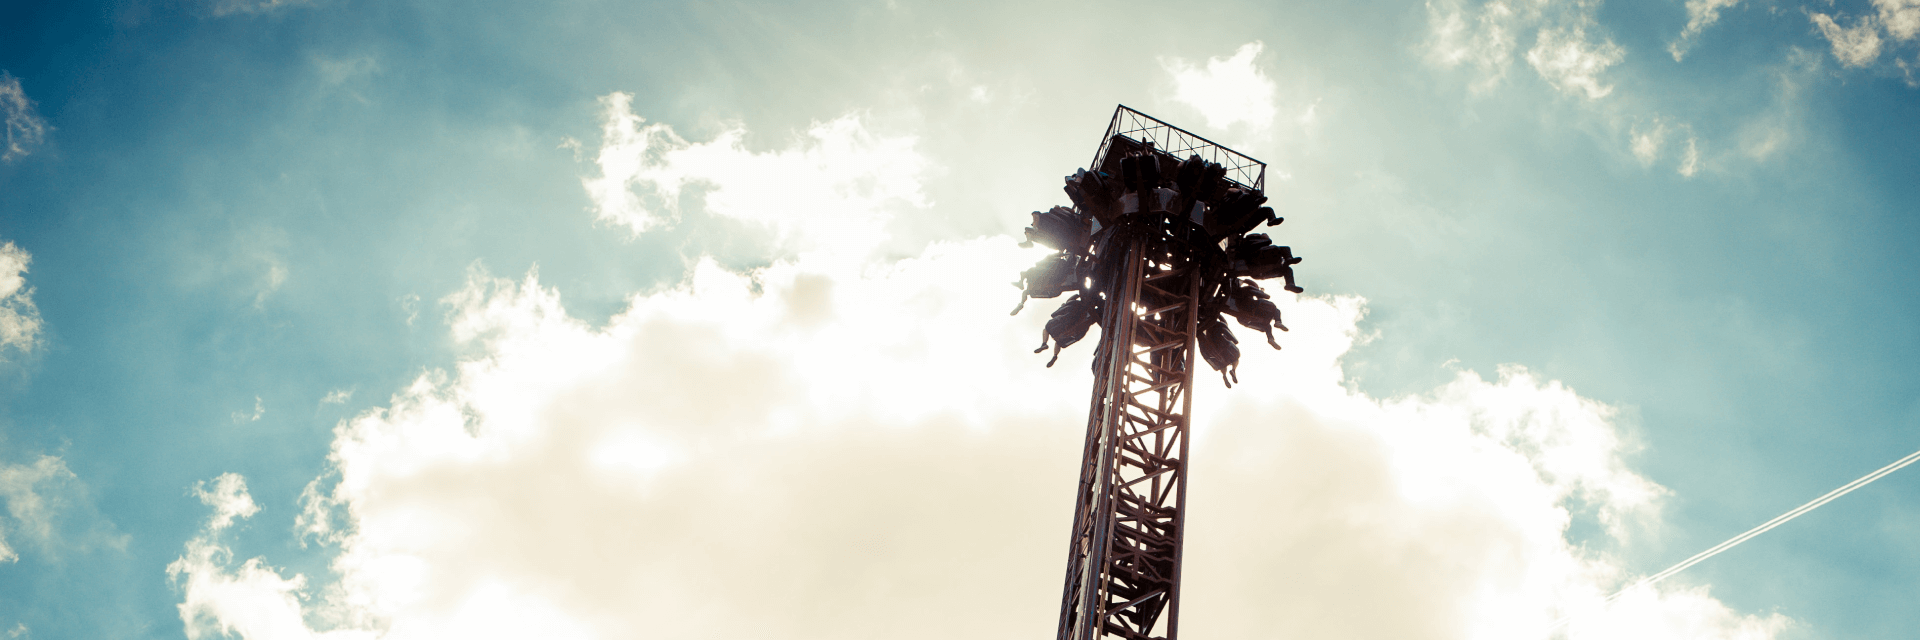 Detonator Drop Ride Silhouette